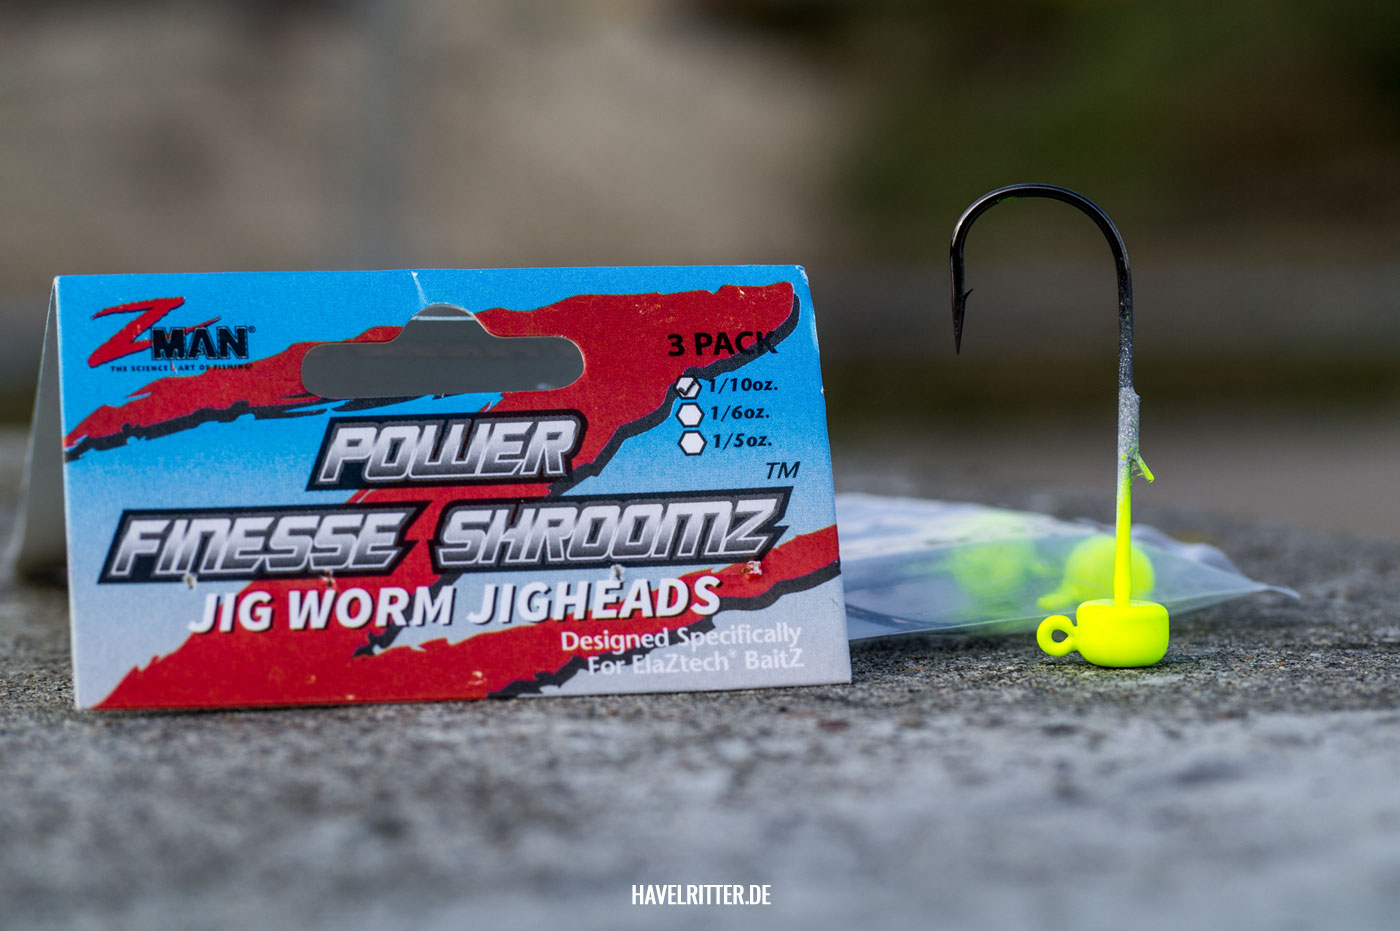 Z-Man Power Finesse Shroomz Jig